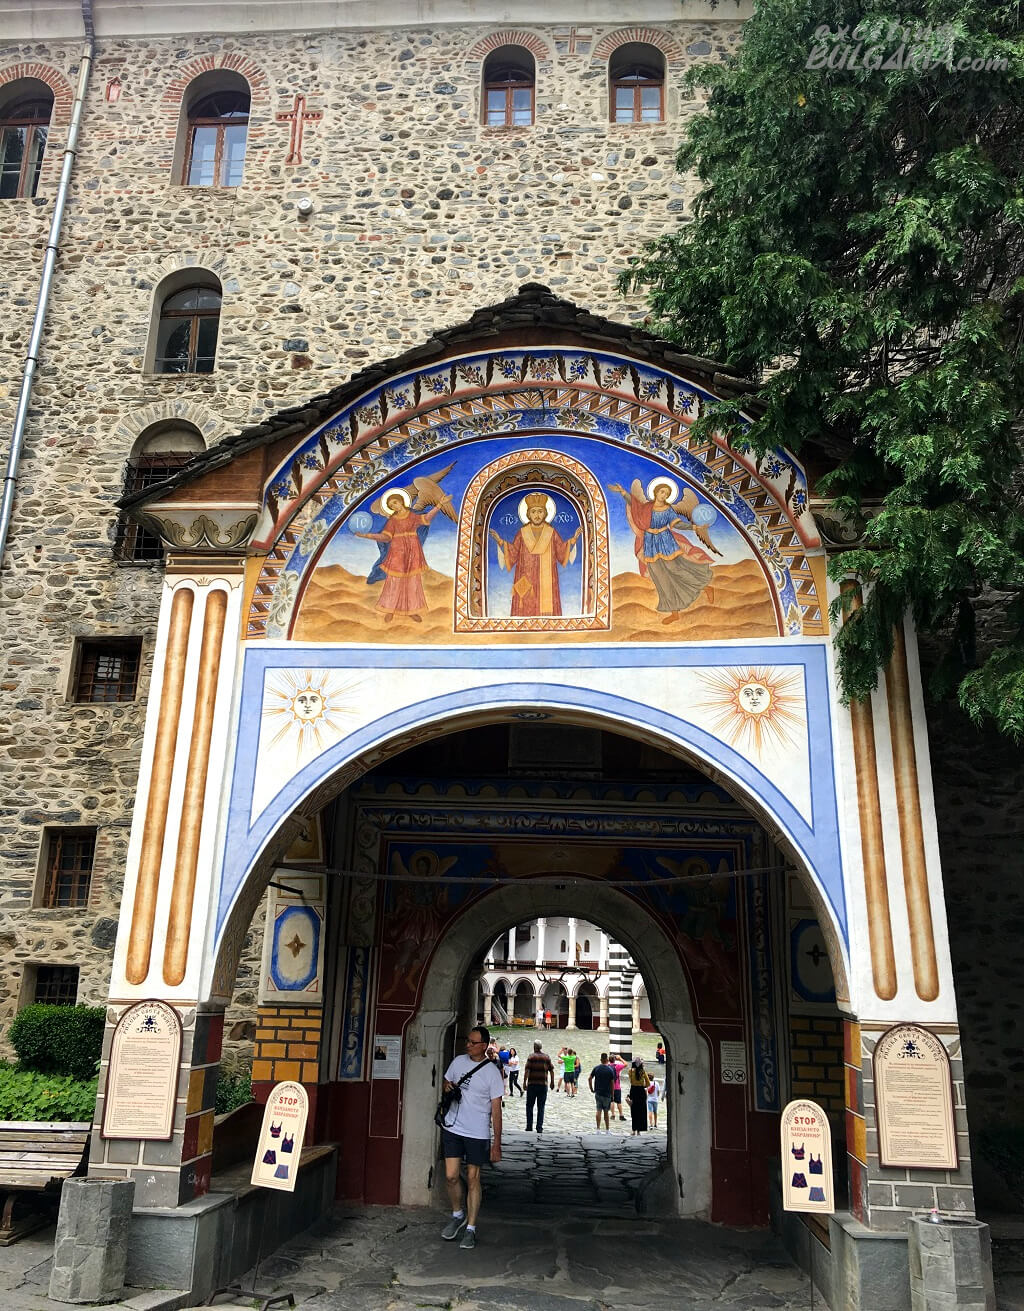 The entrance of the Rila Monastery